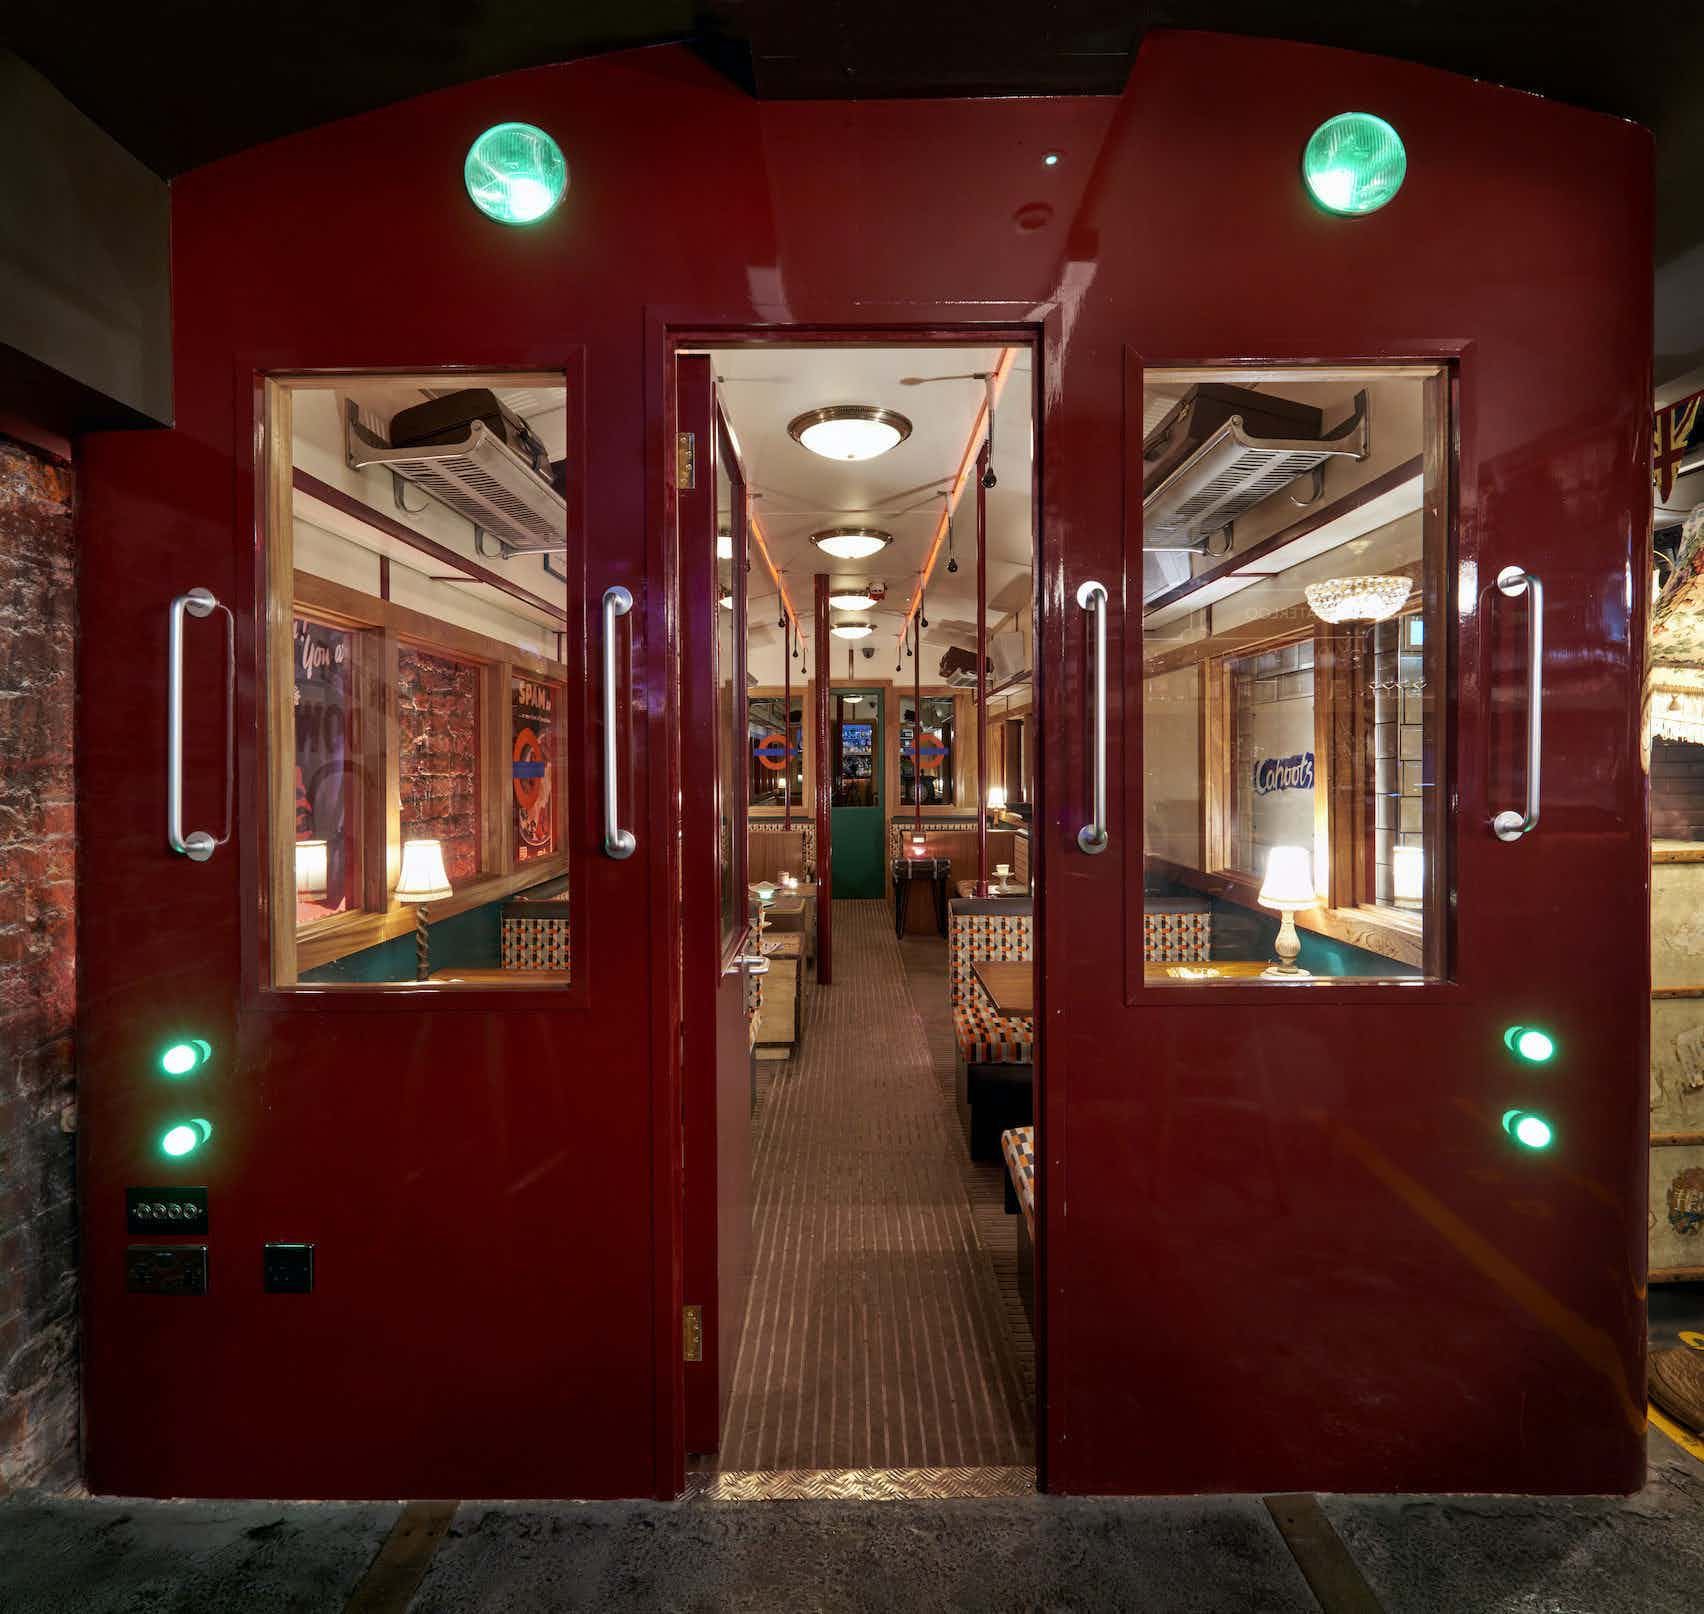 Train Carriage, Evening Hire, Cahoots